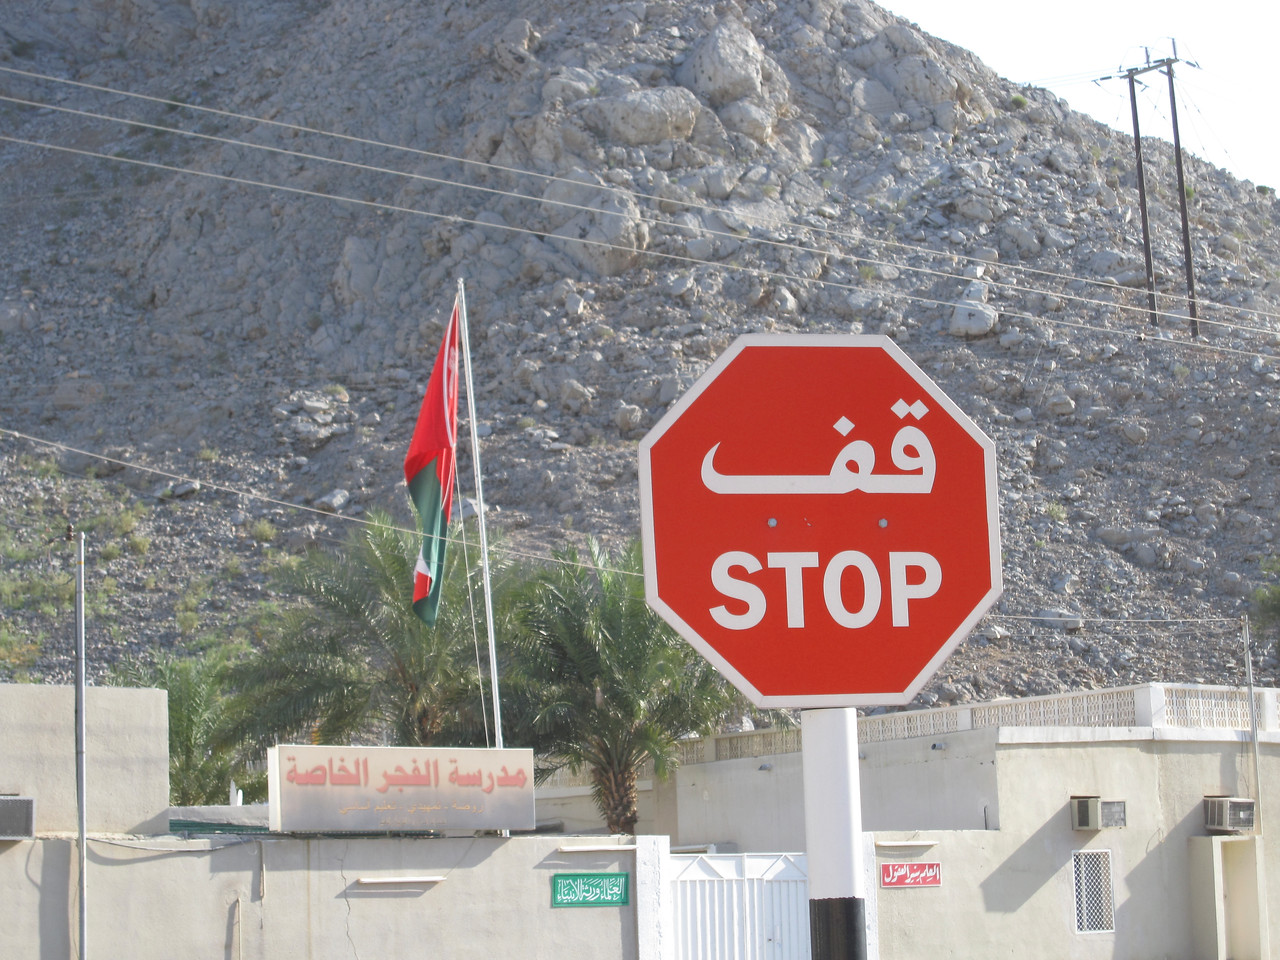 Stop sign on road in Muscat, Oman